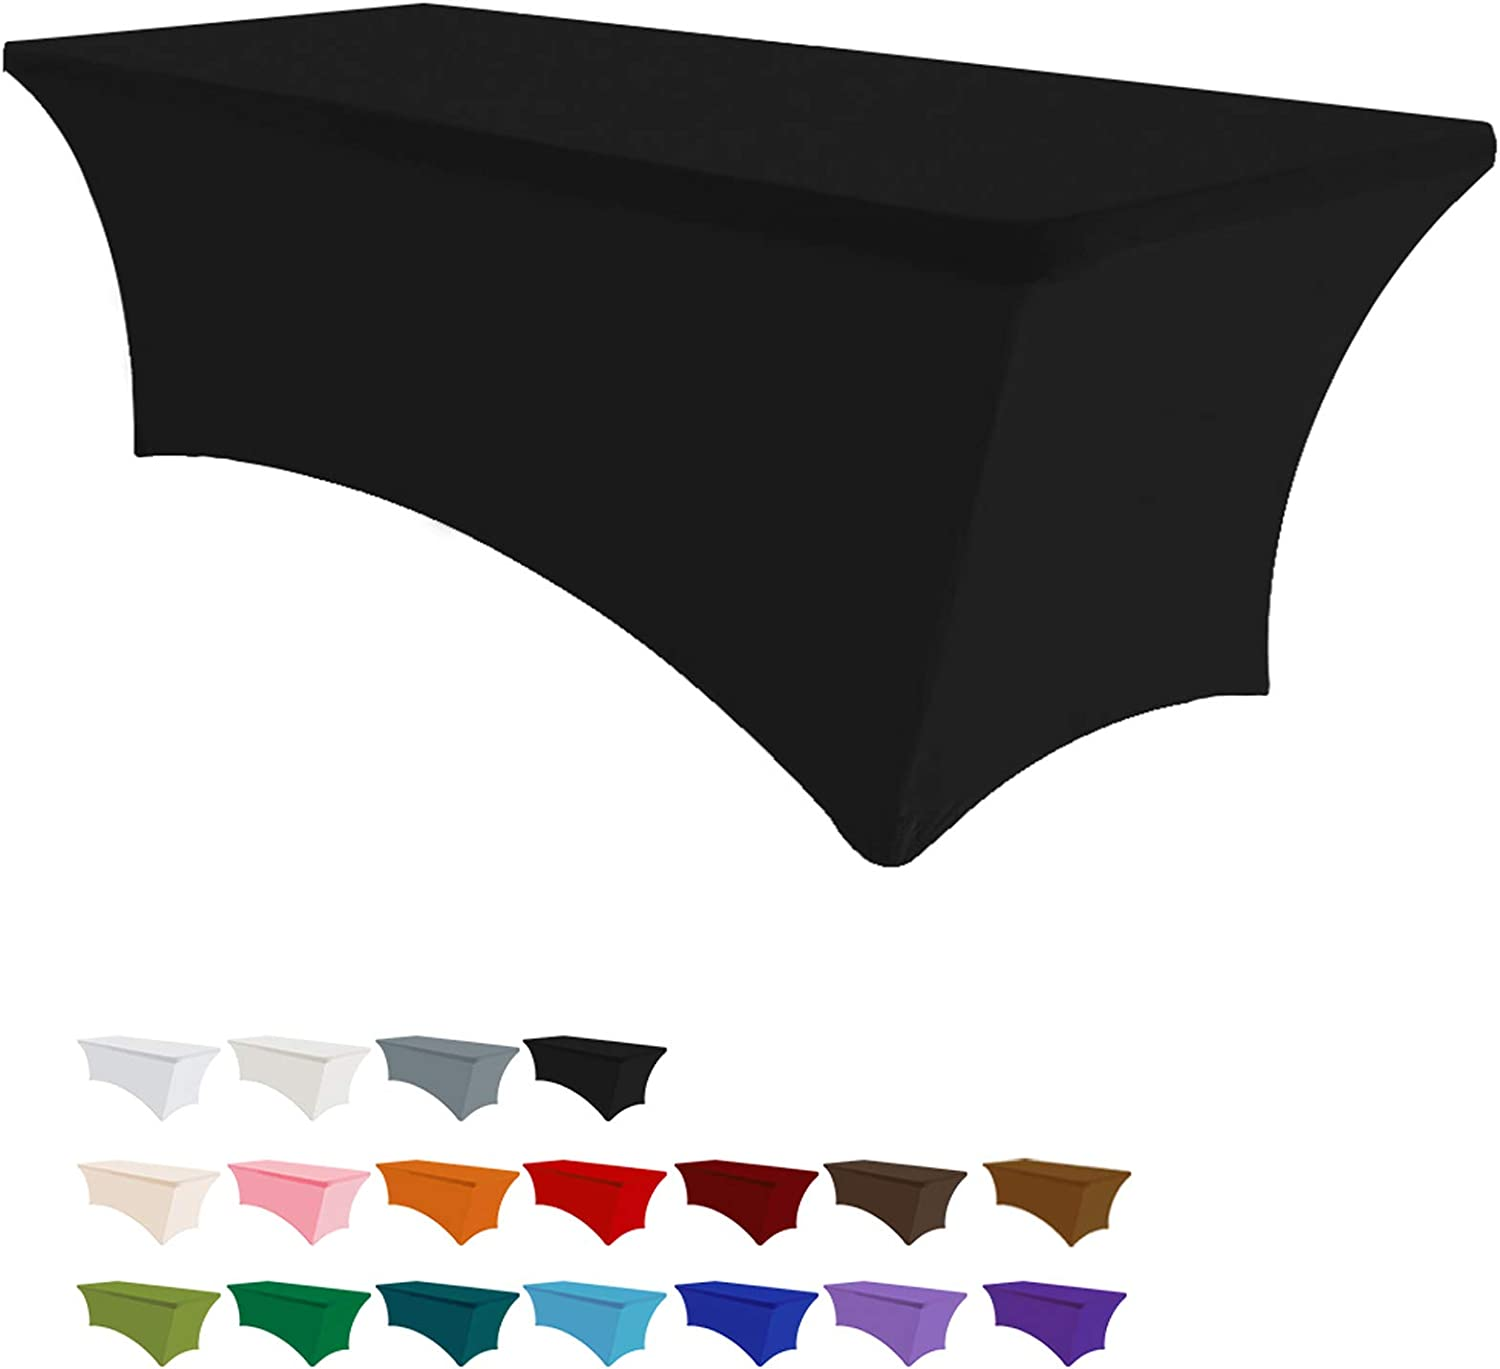 Eurmax 5Ft Rectangular Fitted Spandex Tablecloths Wedding Party Table Covers Event Stretchable Tablecloth (Black): Kitchen & Dining